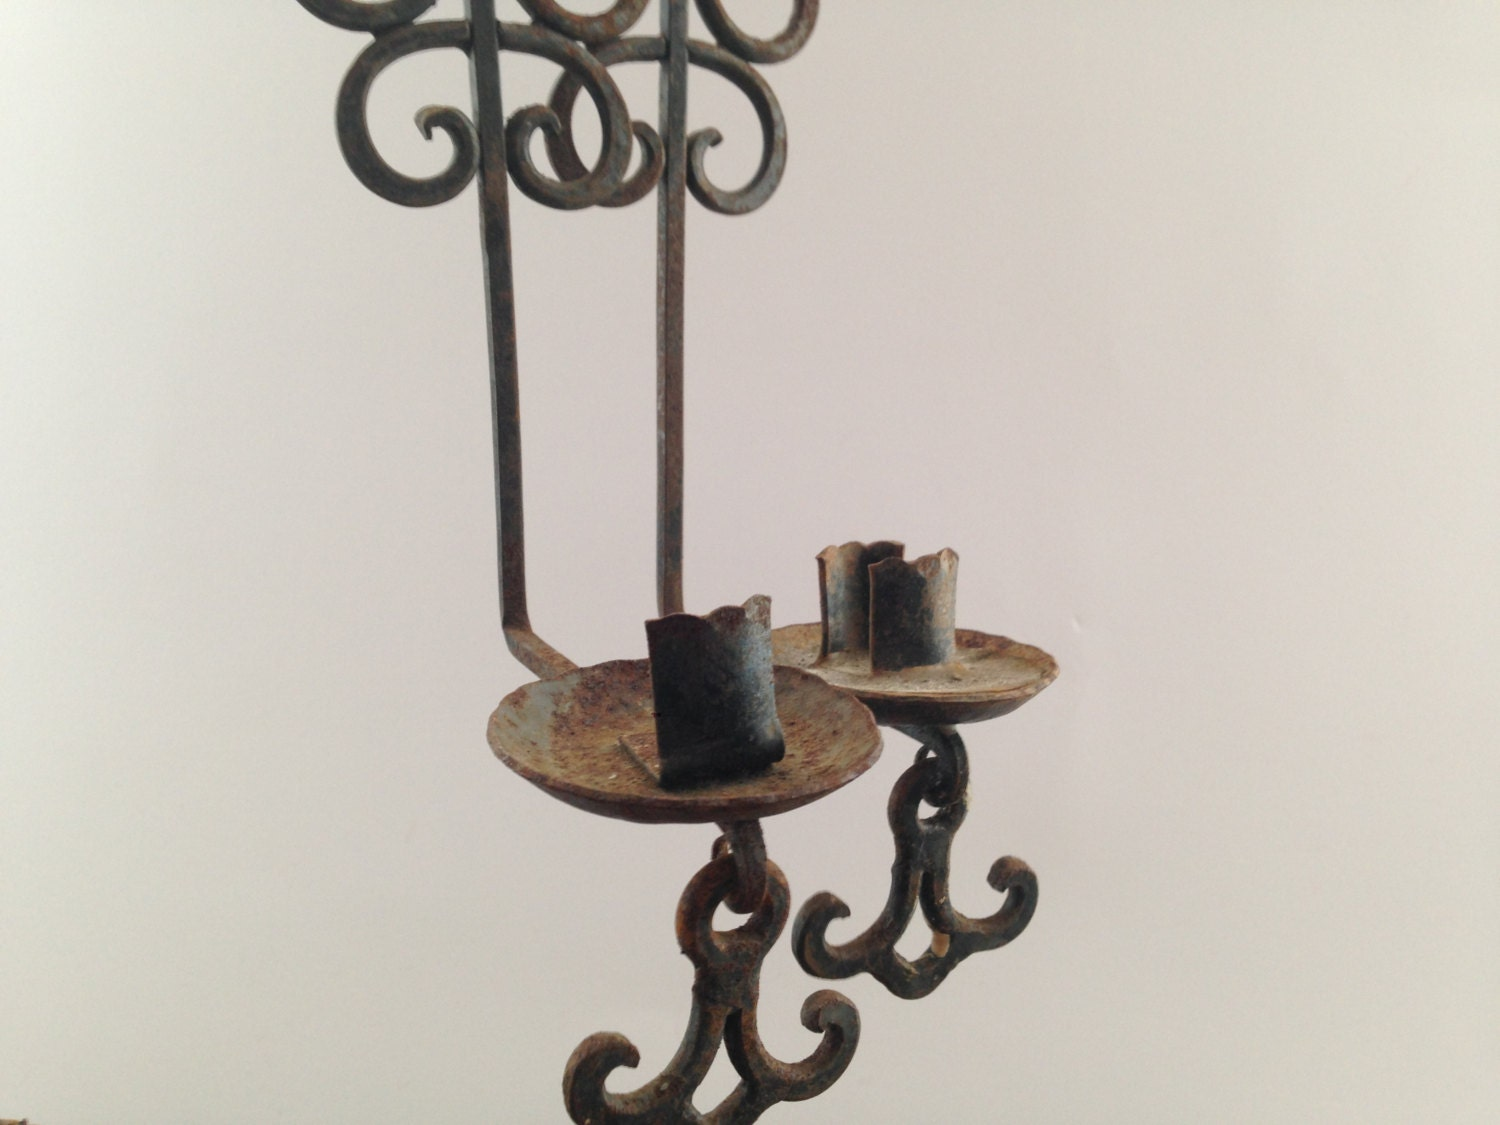 Vintage wall sconces Set of 2 Black iron Wall Candle Holders